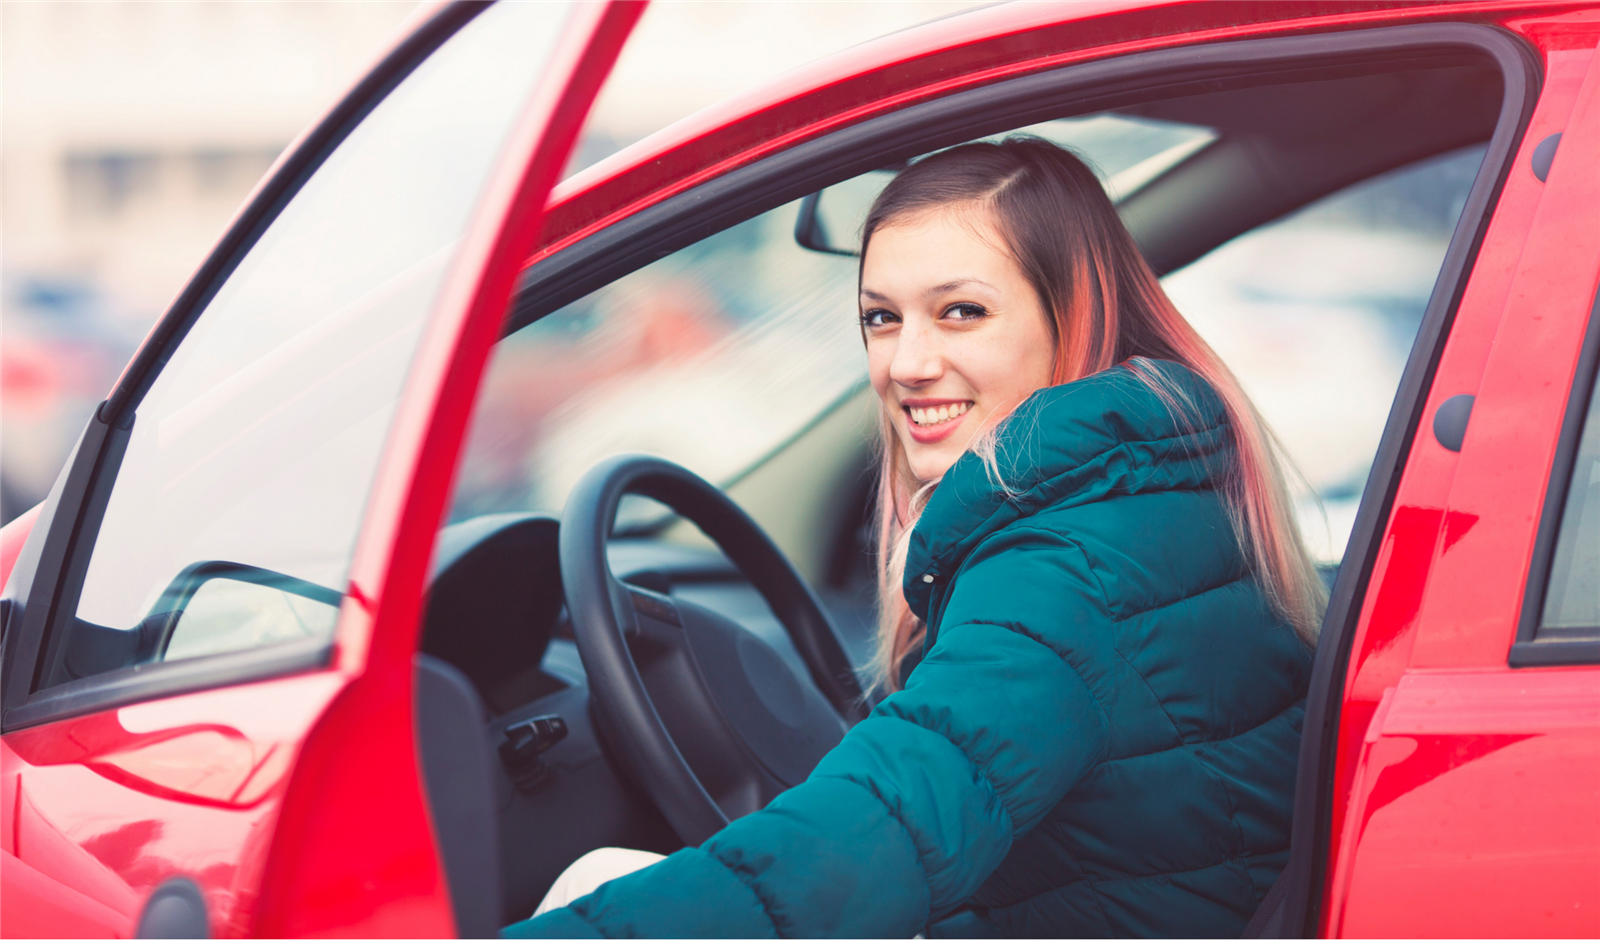 Girl smiling from inside red car with door open